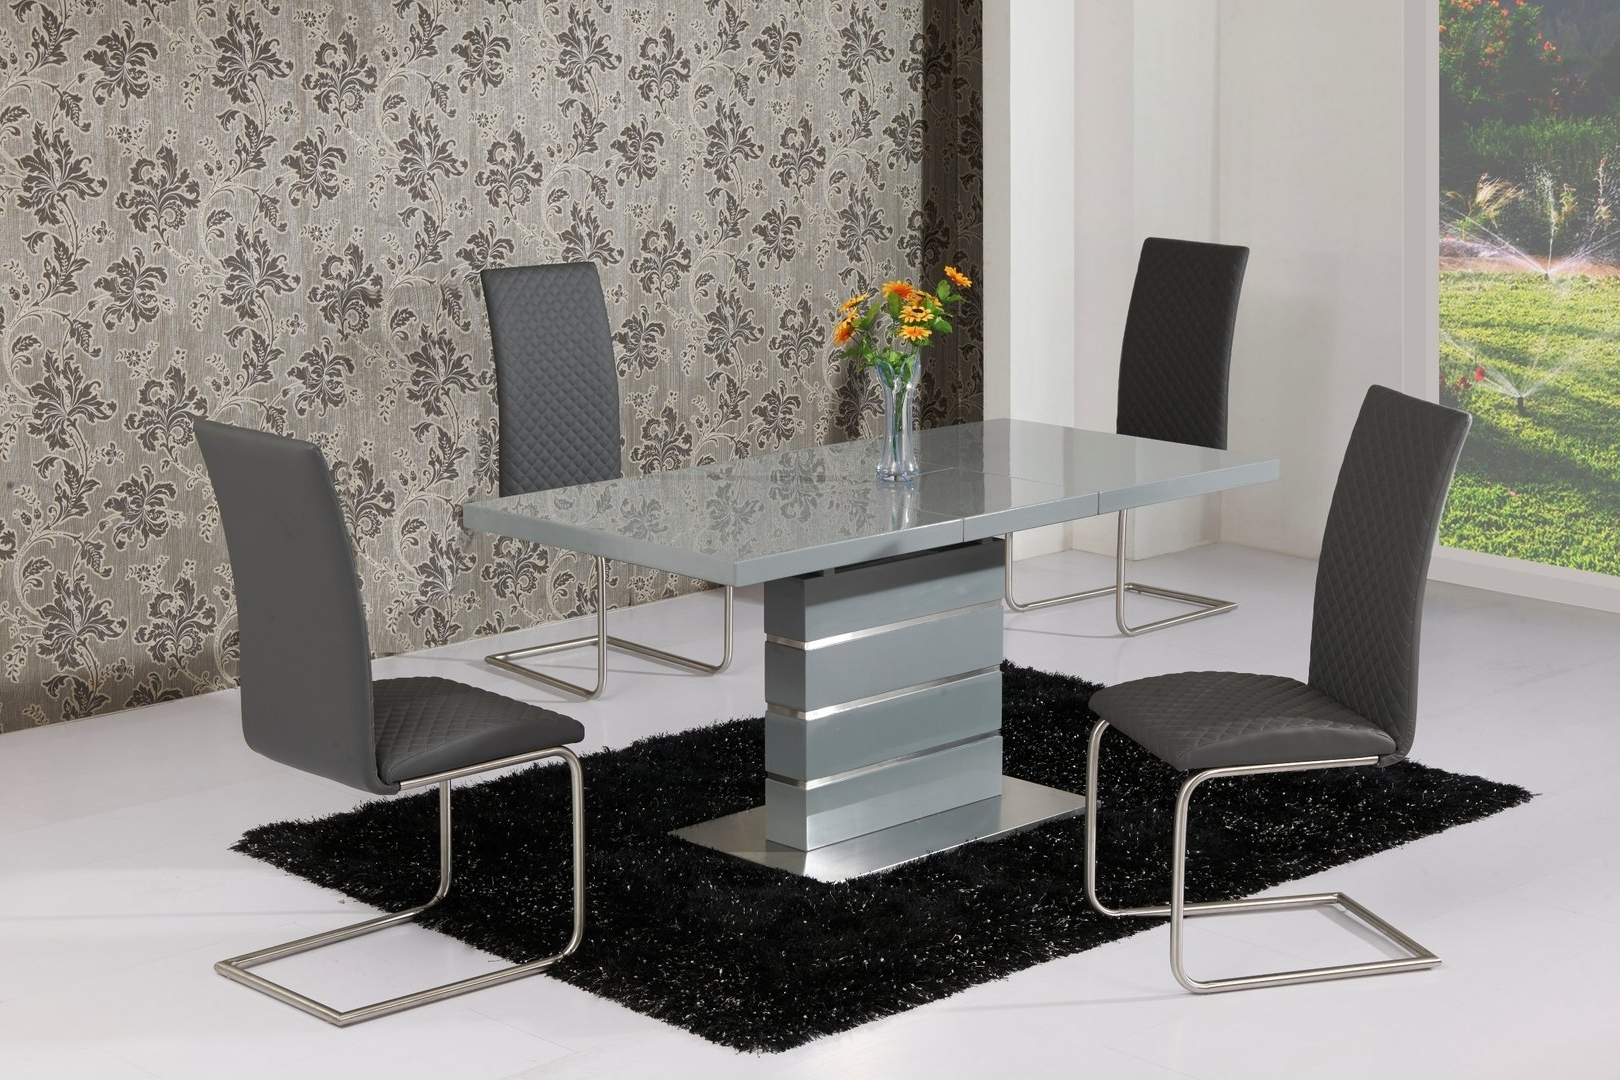 High Gloss Dining Sets Throughout Well Known Extending Grey High Gloss Dining Table And 4 Grey Chairs (View 5 of 25)